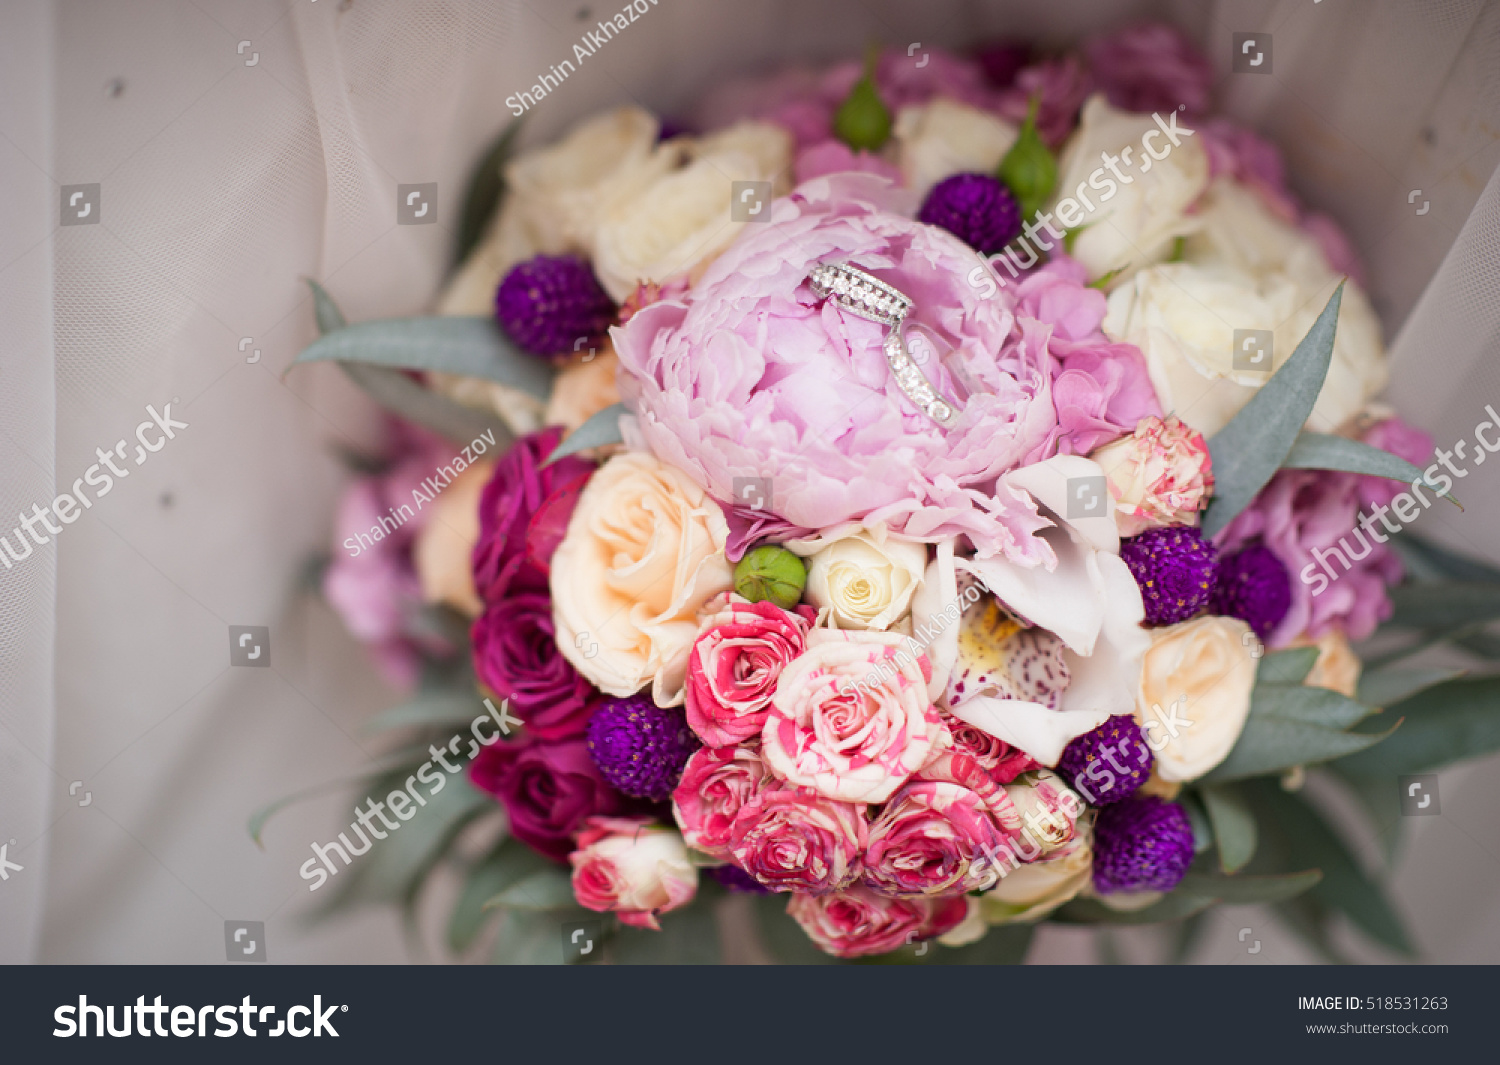 Bouquet Of The White And Pink Peonies Flowers Wedding Bride